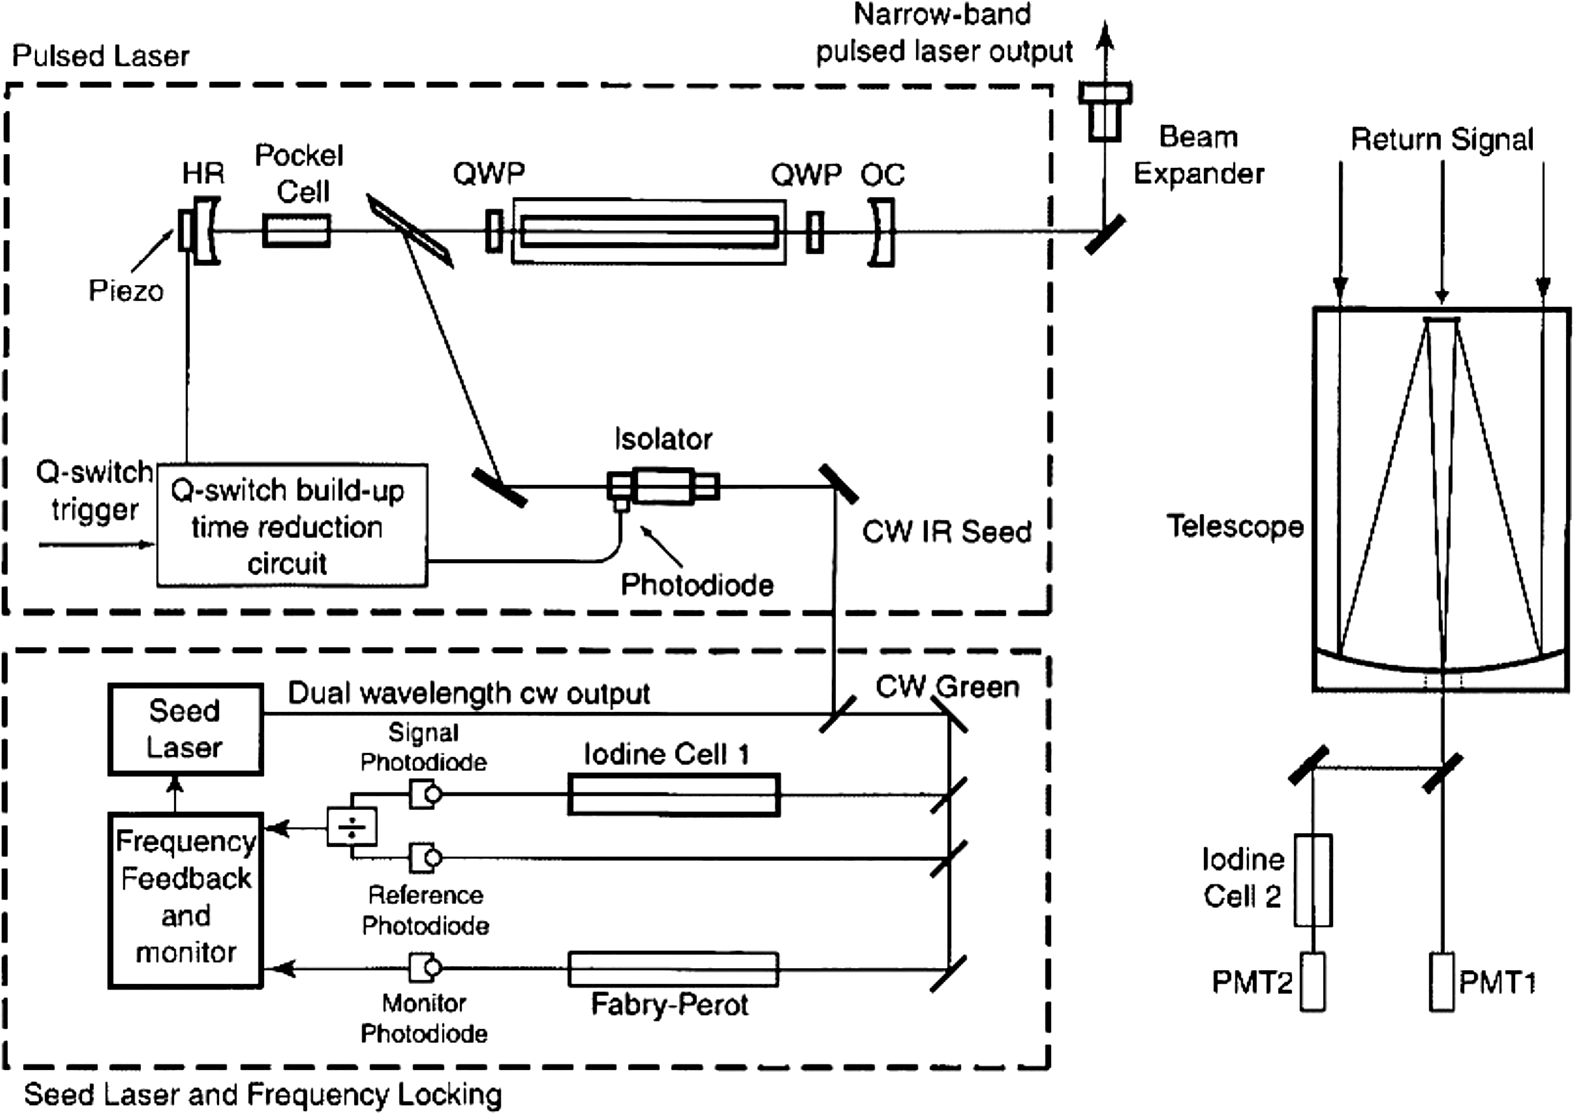 Schematic diagram for injection-seeded Q-switched pulsed Nd:YAG laser  transmitter.